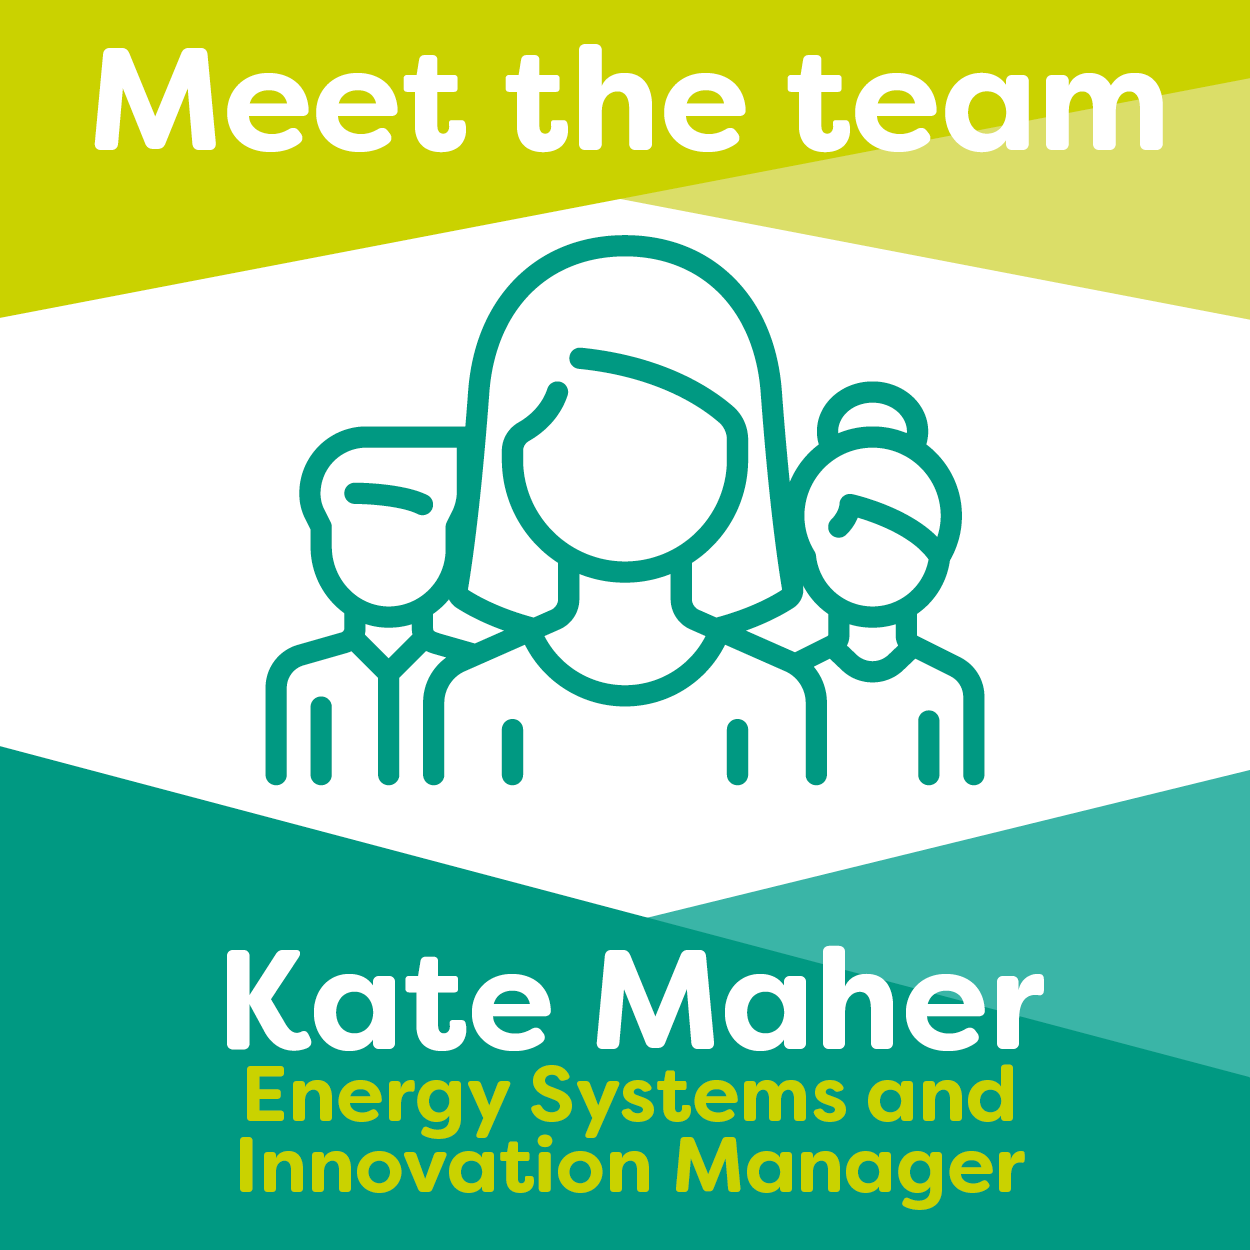 Meet Kate Maher, our Energy Systems and Innovation Manager